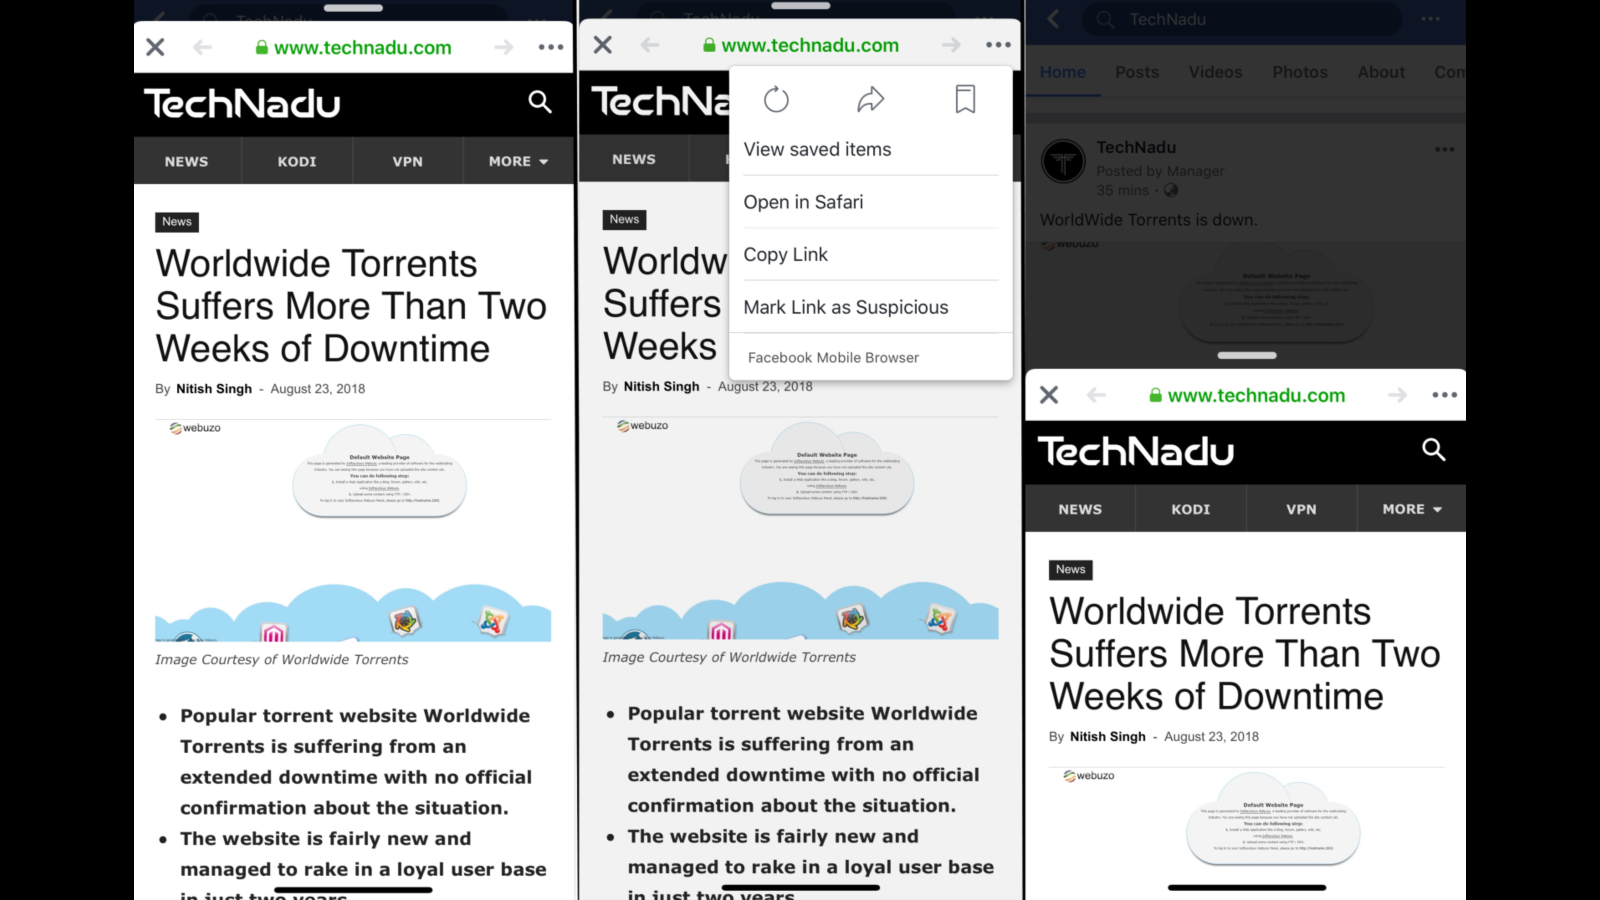 Facebook Tests New In-App Browser Feature on iOS - TechNadu